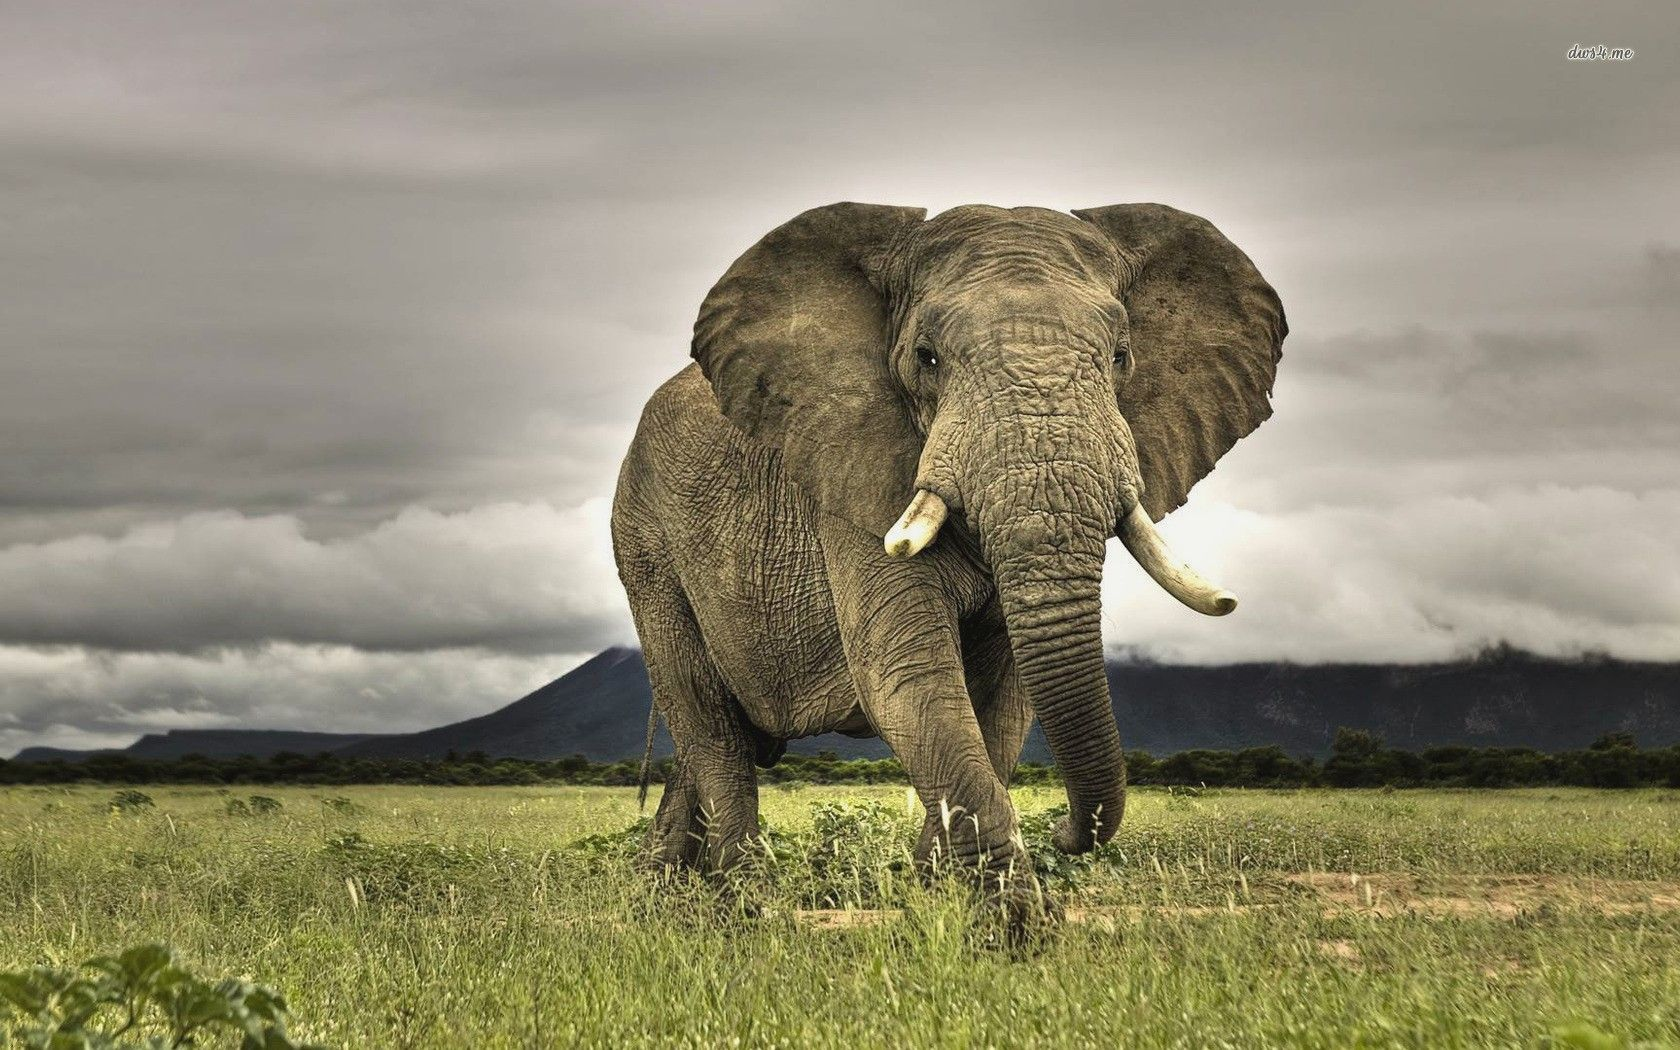 Wallpaper download elephant - Top Download Elephant Wallpapers Images And Pictures Collection